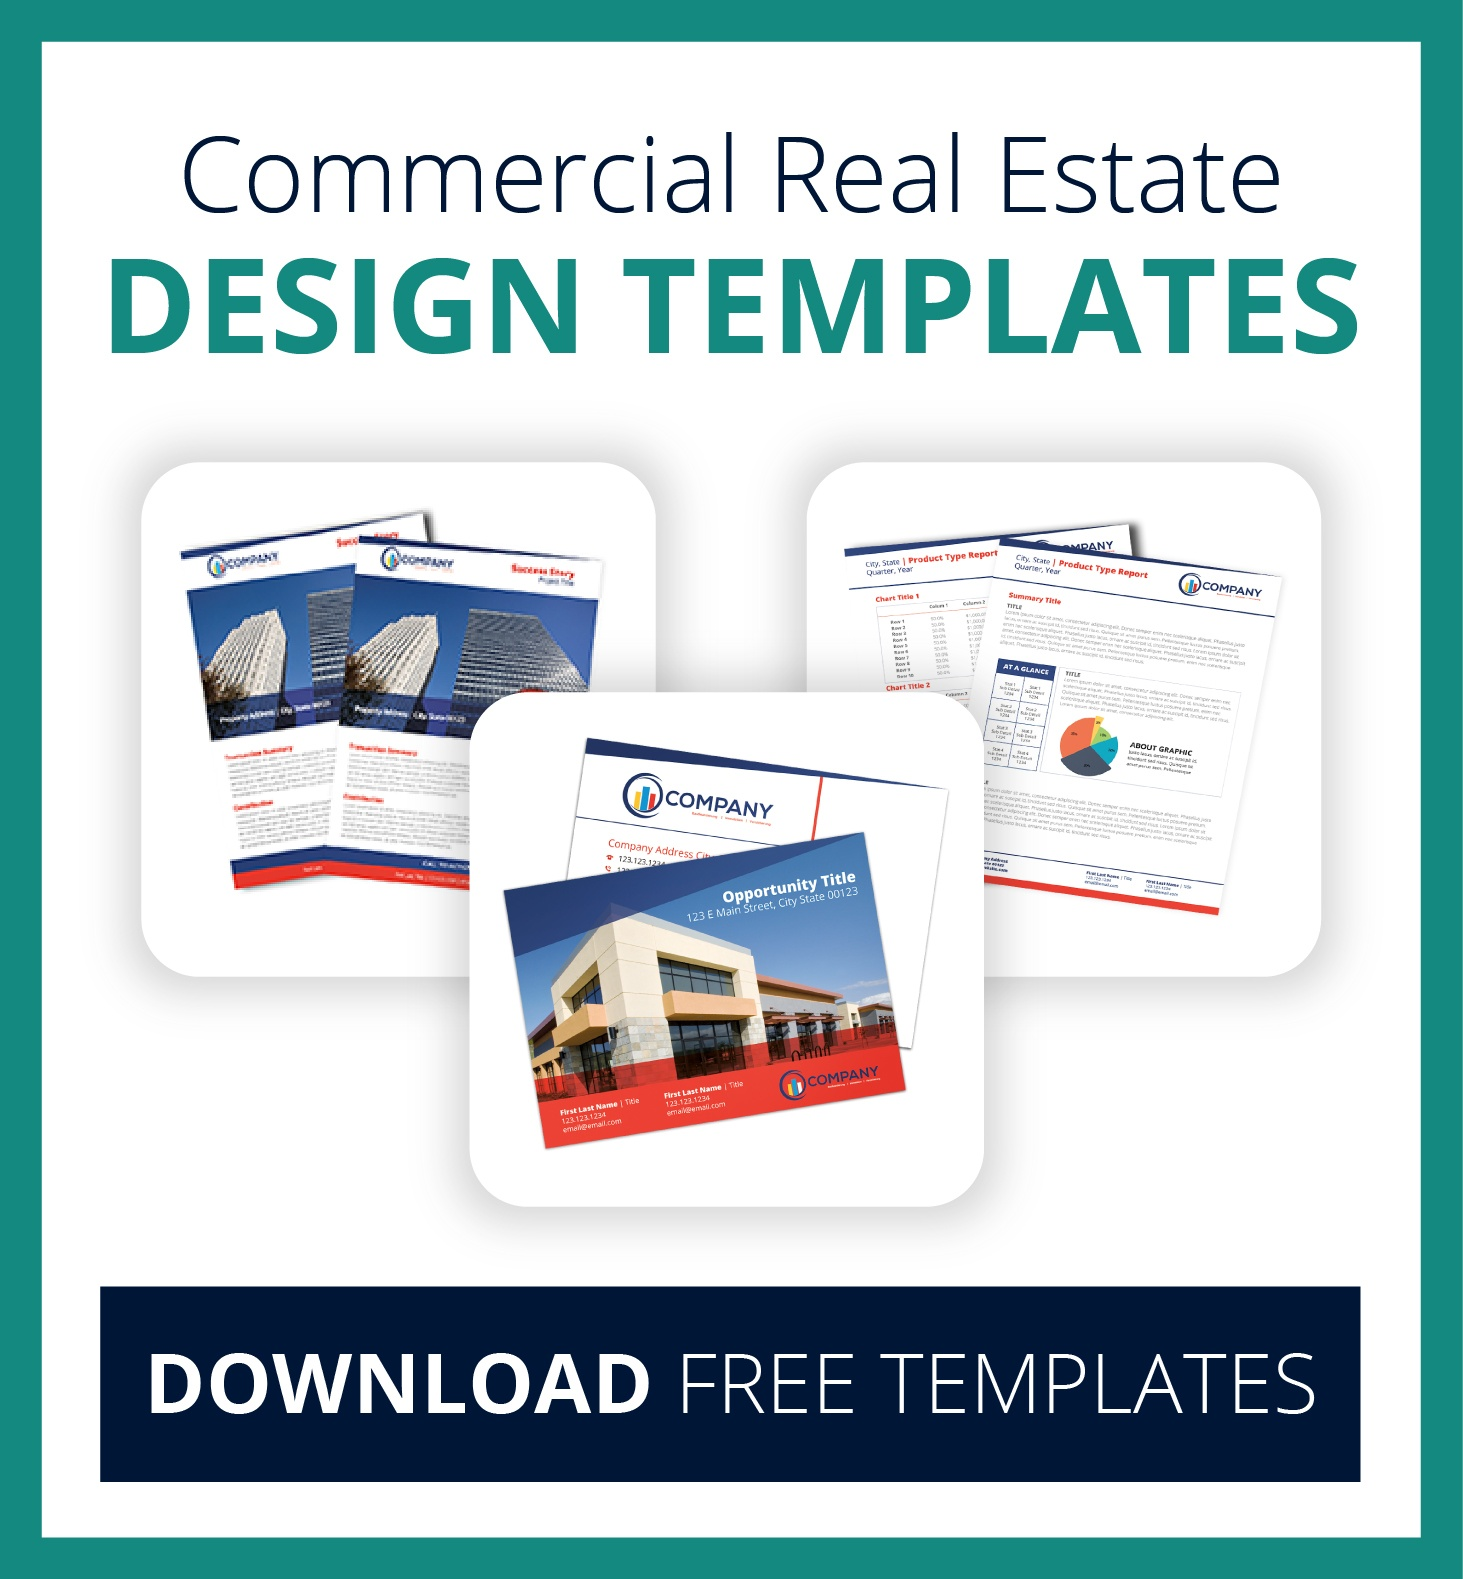 Commercial Real Estate Design Templates